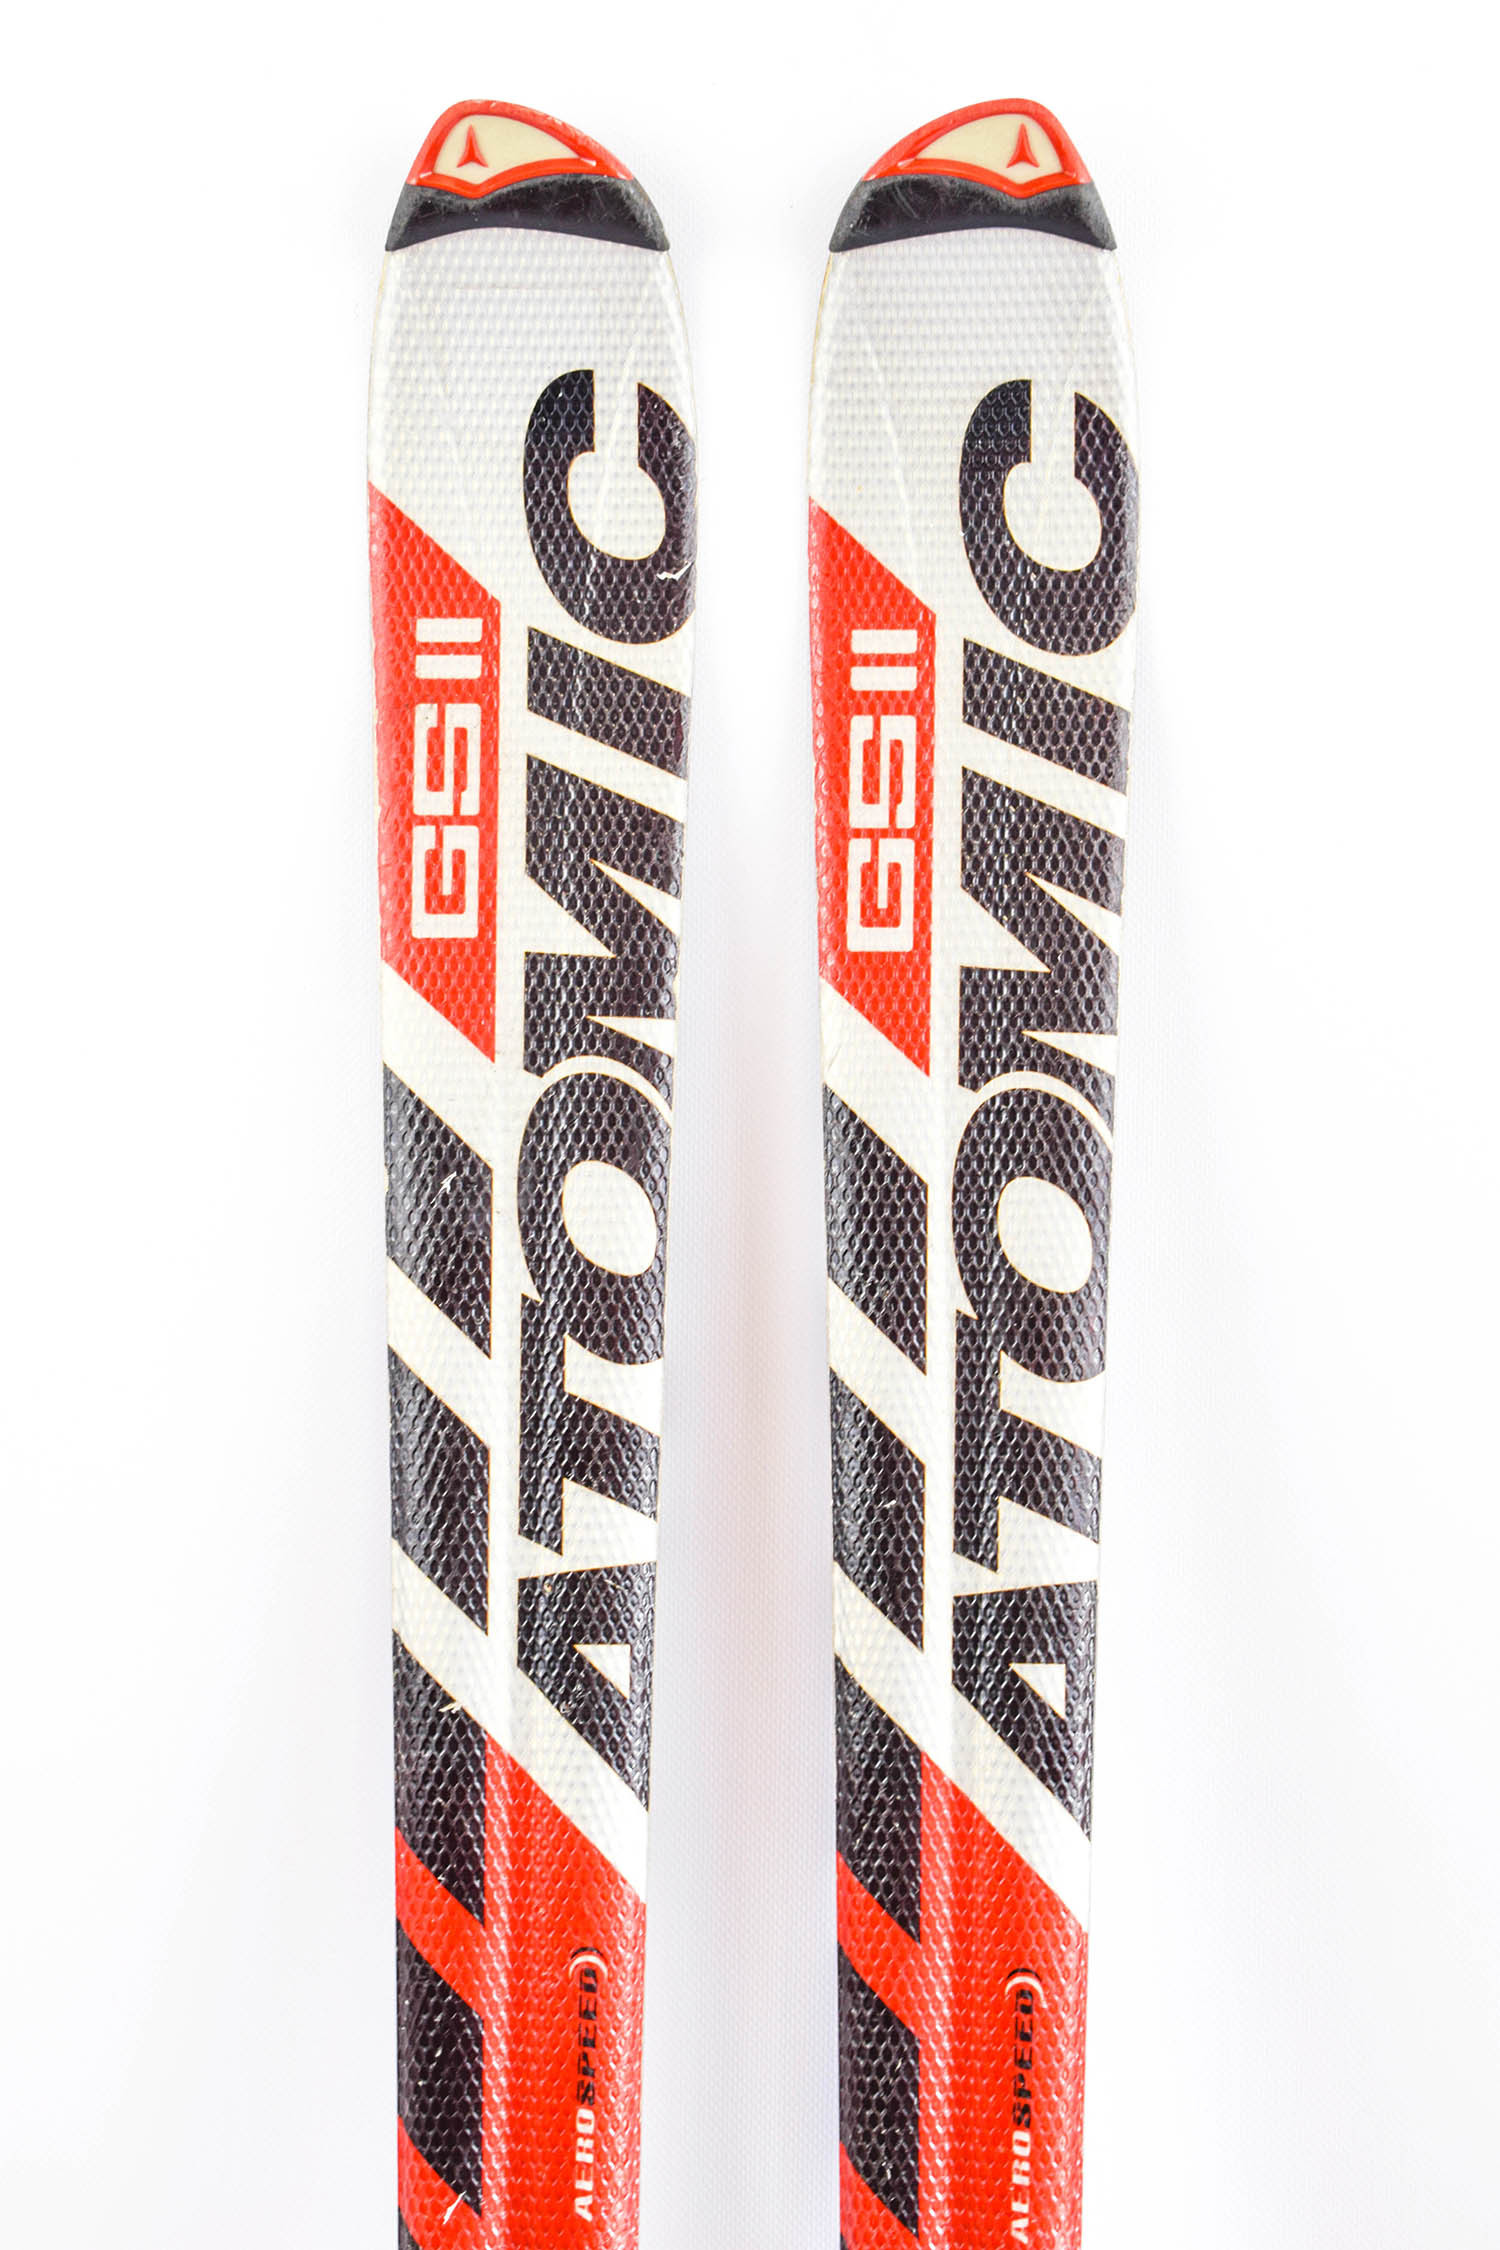 Gs Ski Gliss 11 Salomon C500 Rtl Easy B46w4qd